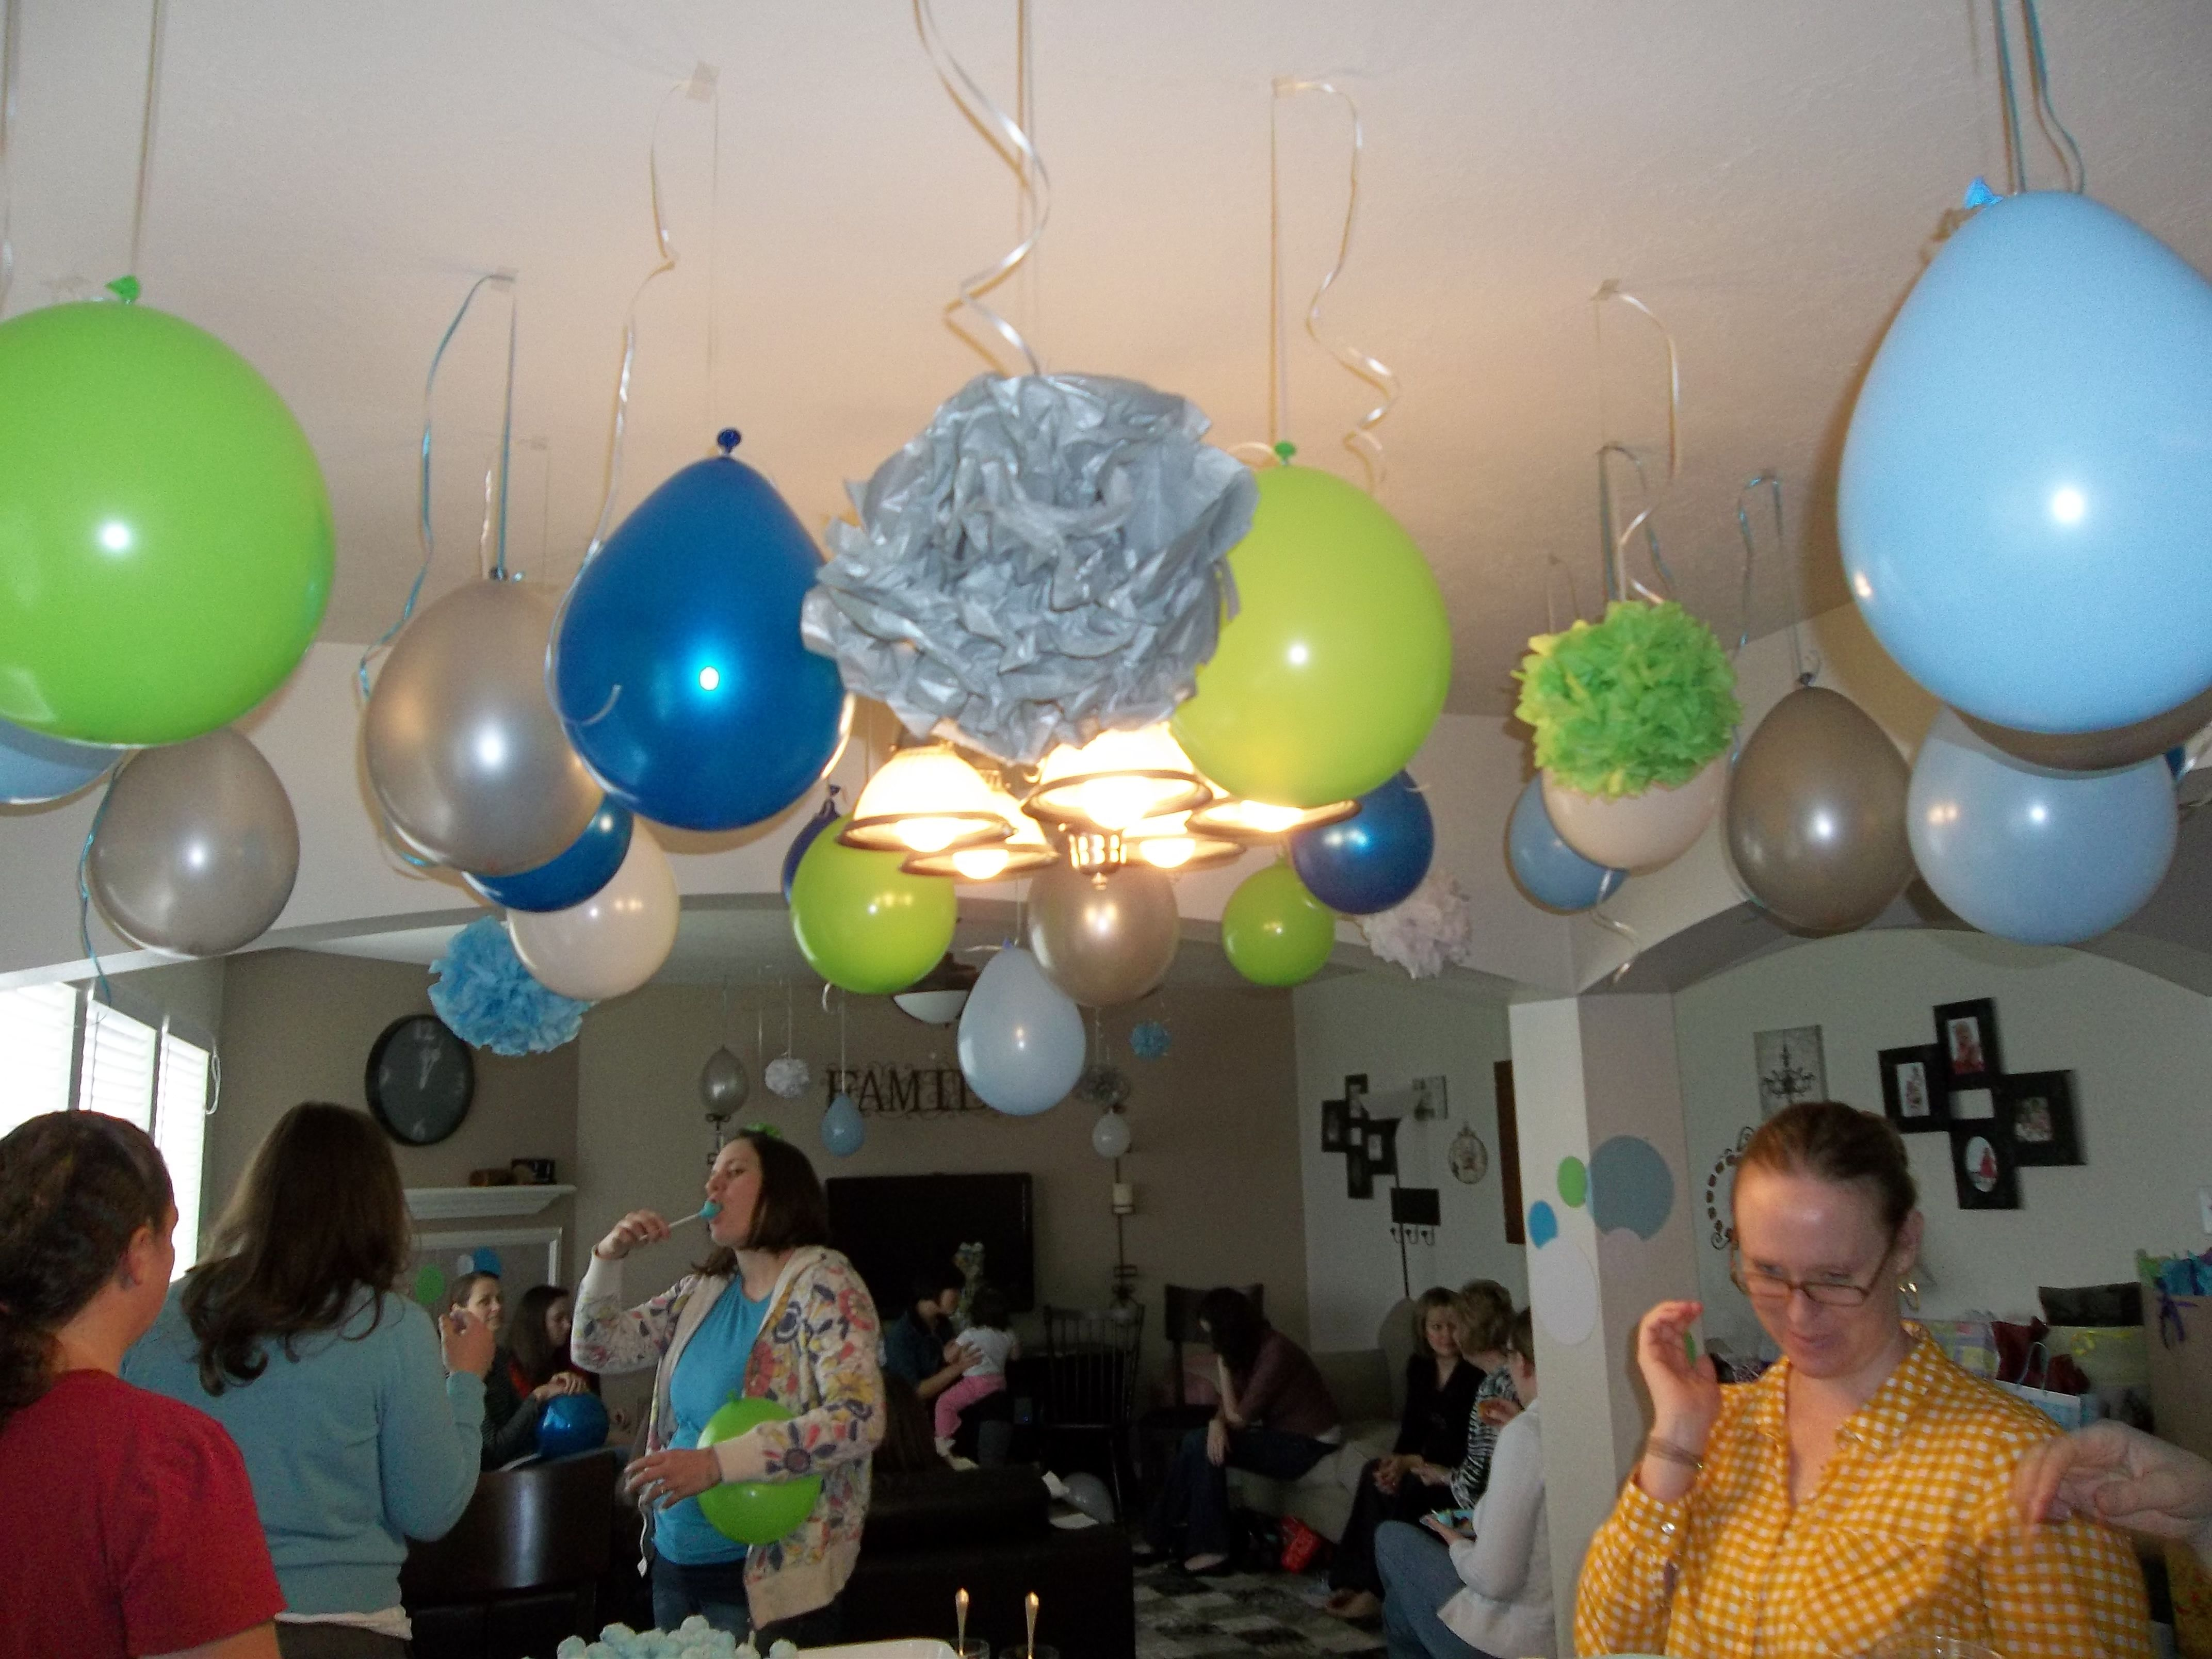 home made pom poms, and hanging balloons upside down with marble inside!